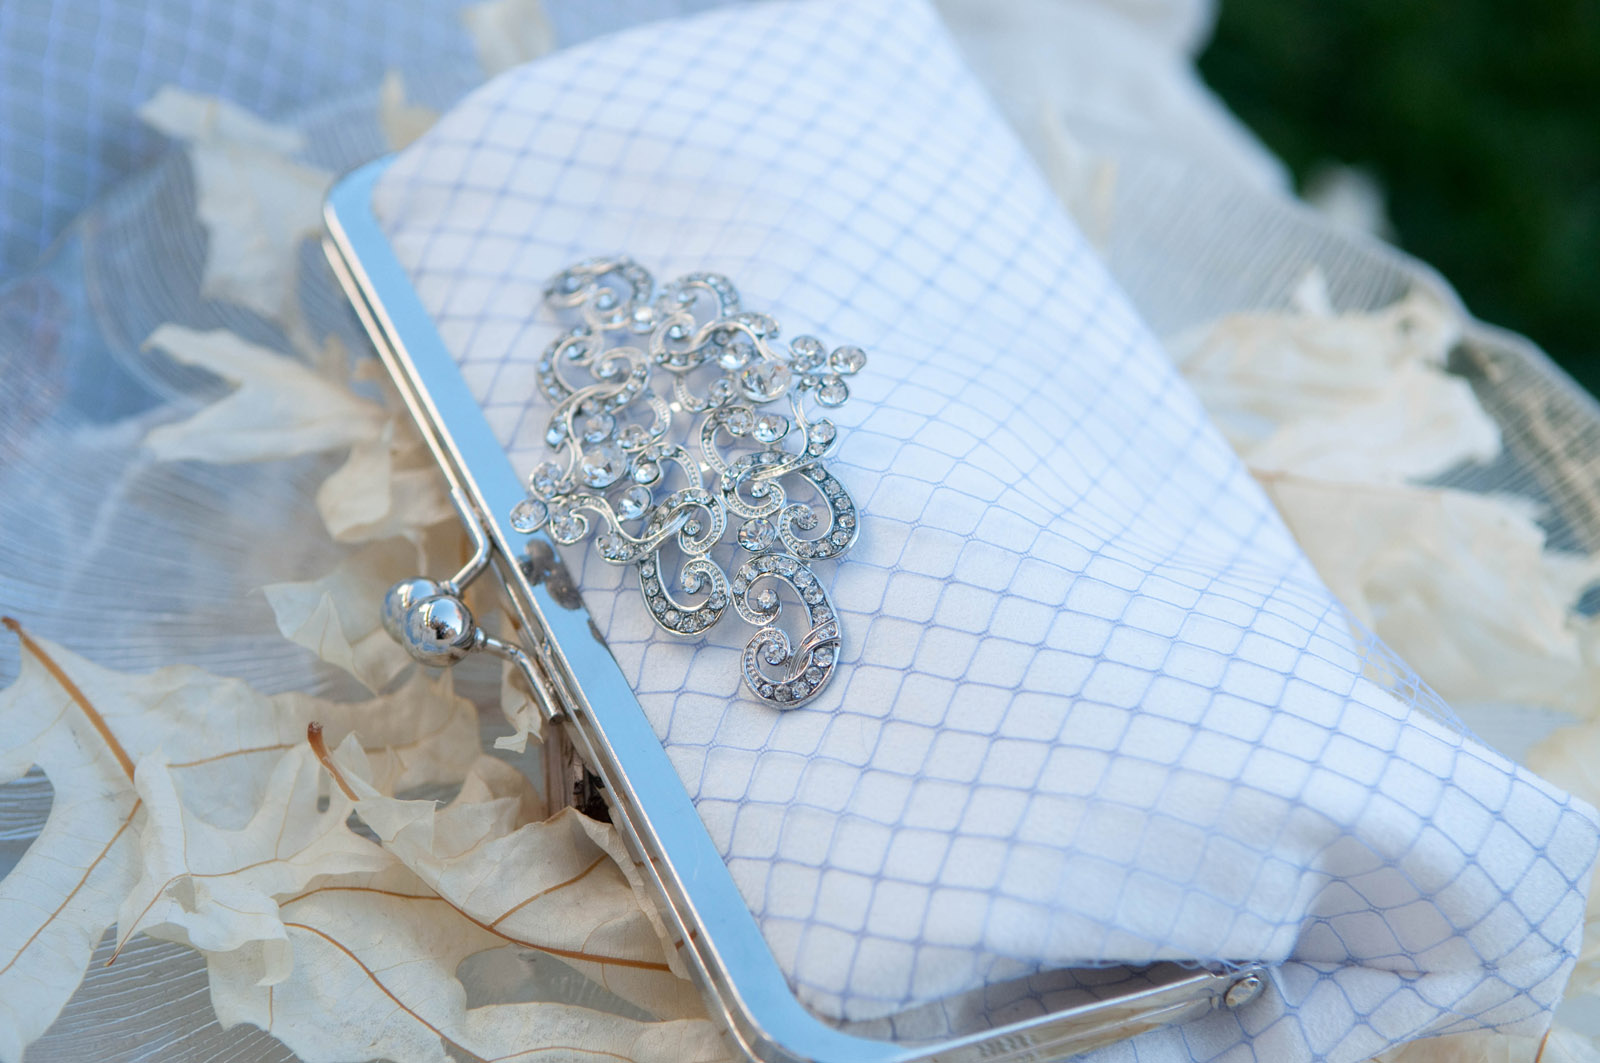 Bohemian Chic Wedding | ArANGEE W. Bridal & Bridesmaids Clutch bags | Photo by Samantha Randall